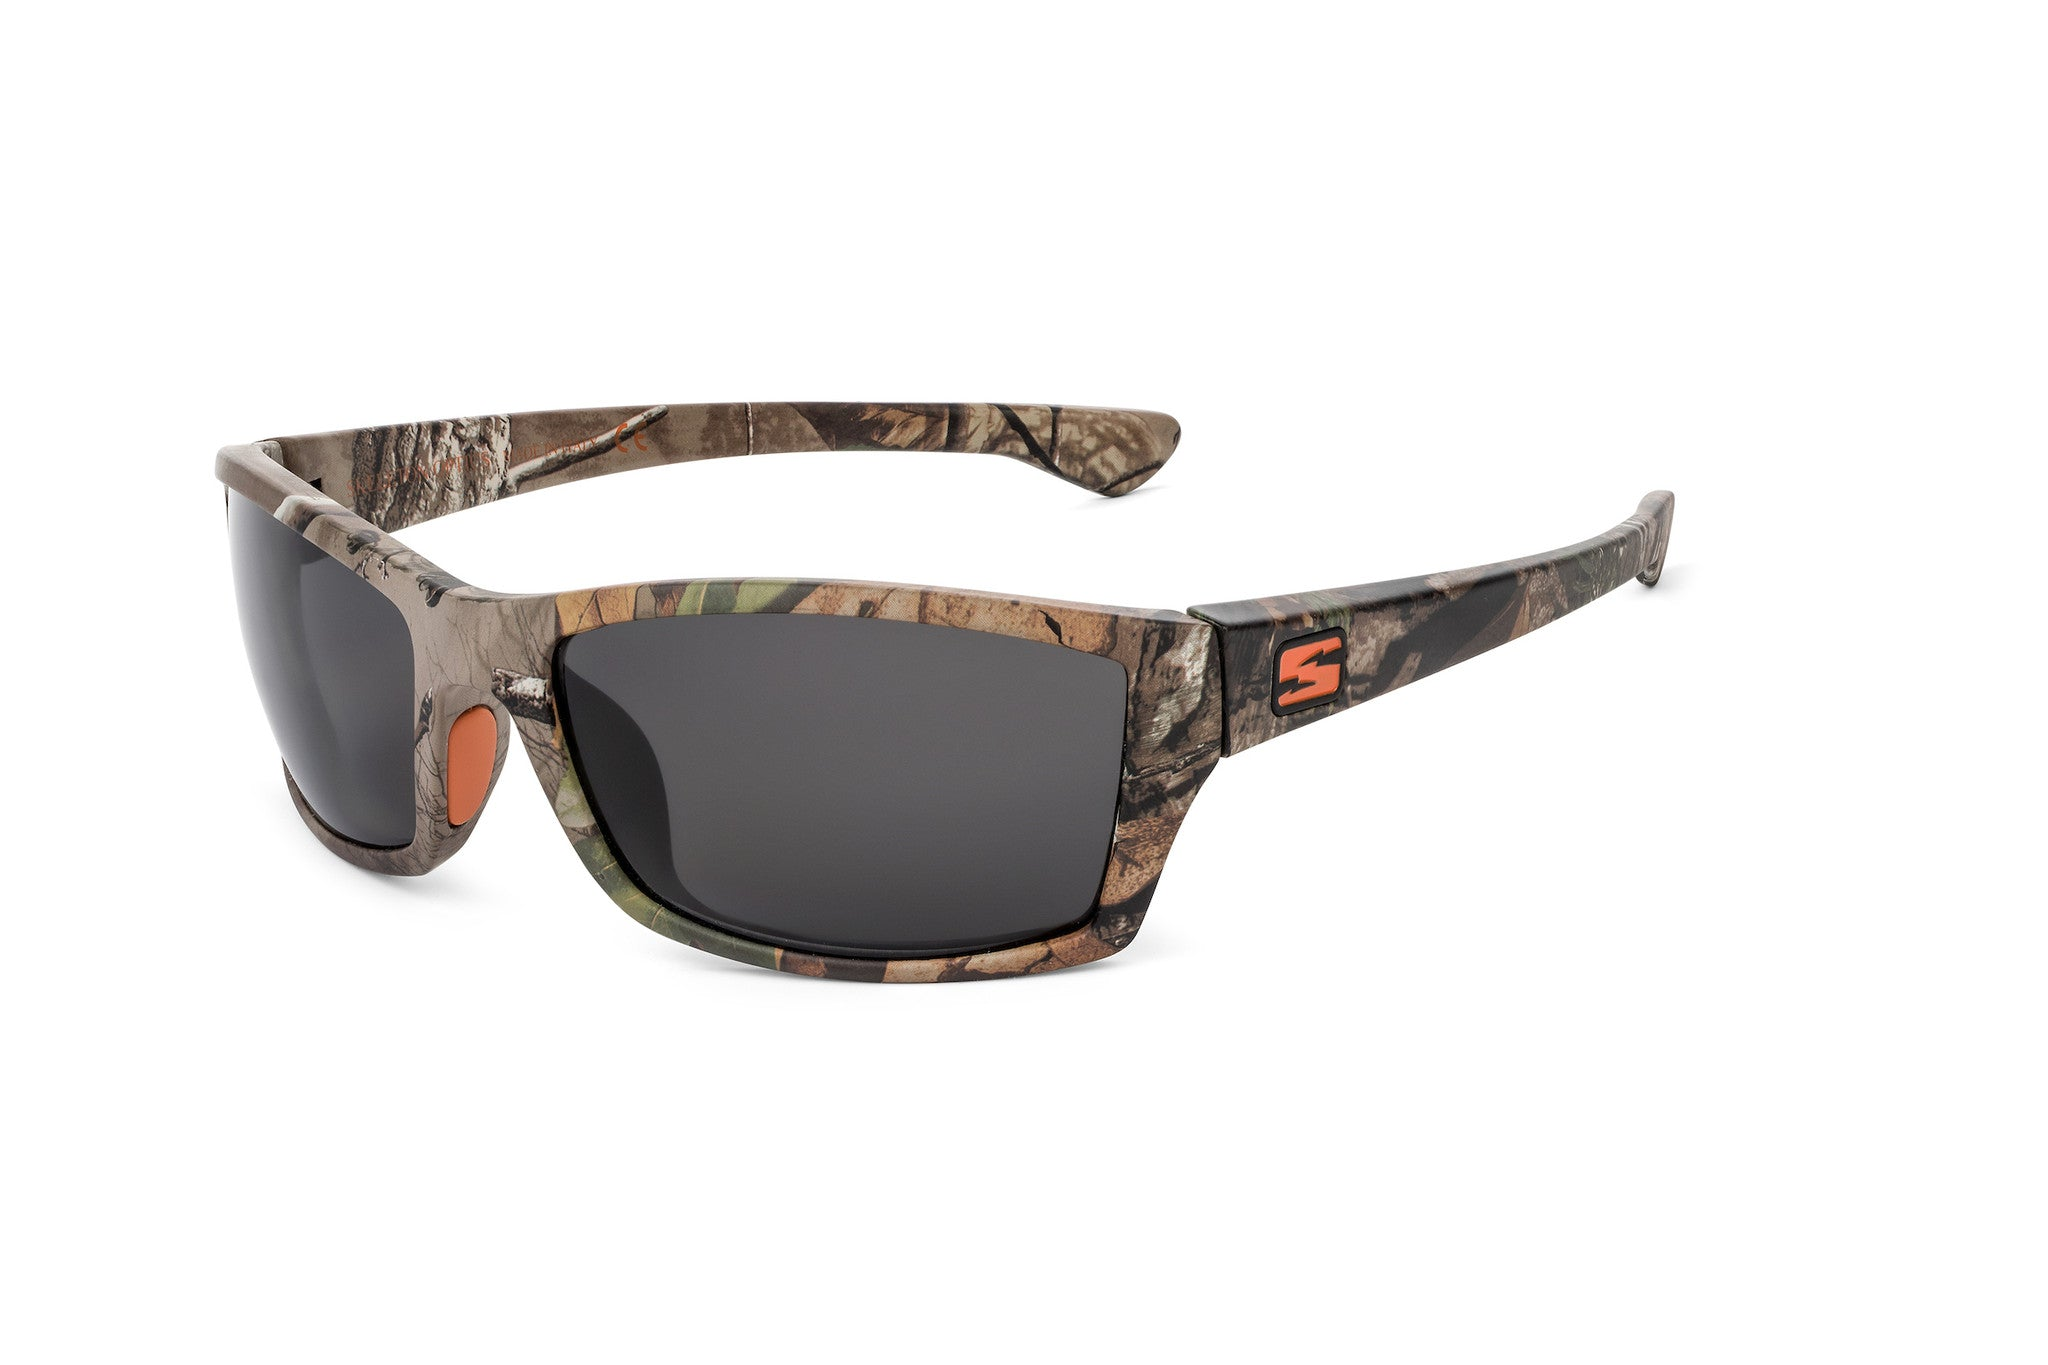 Scout - Realtree Xtra® Edition